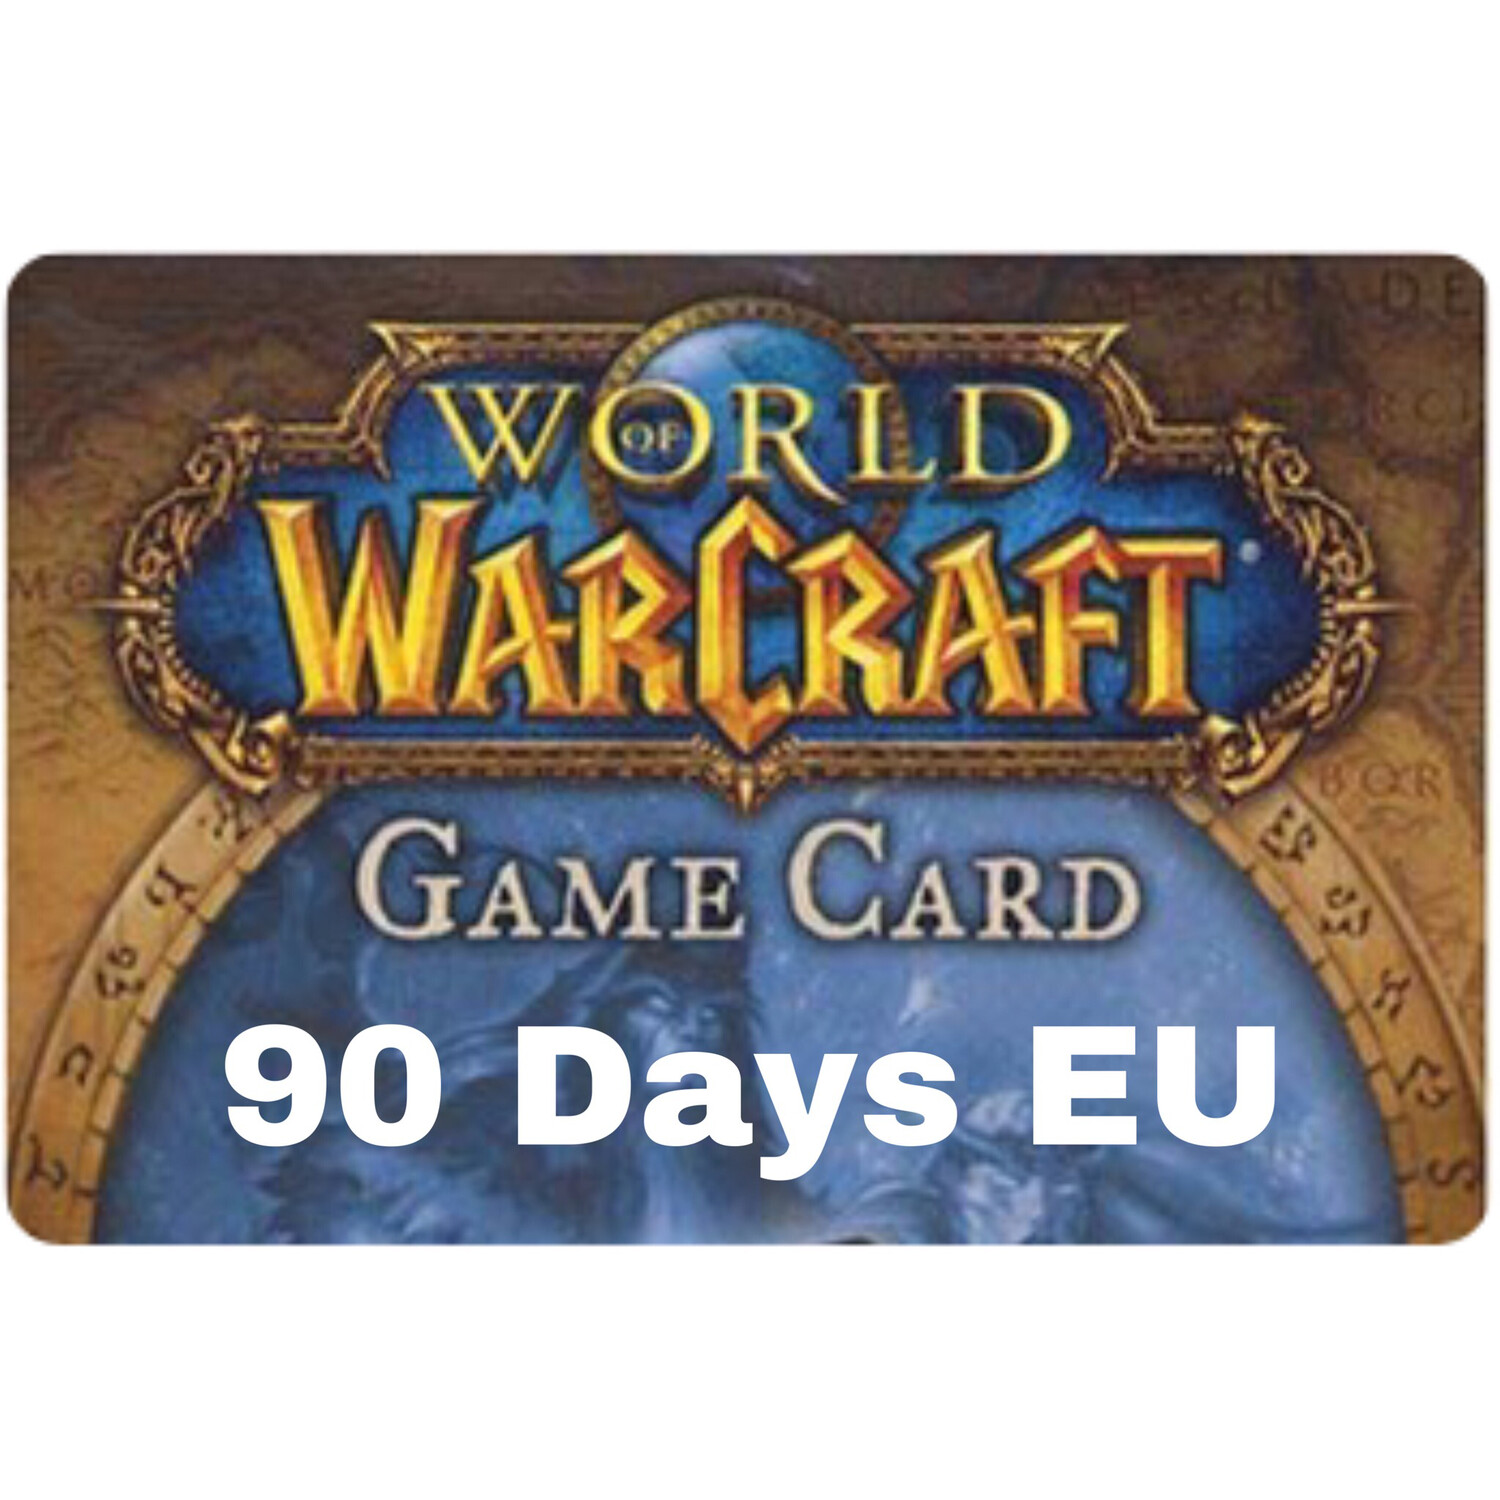 World of Warcraft 90 Day EU Game Card